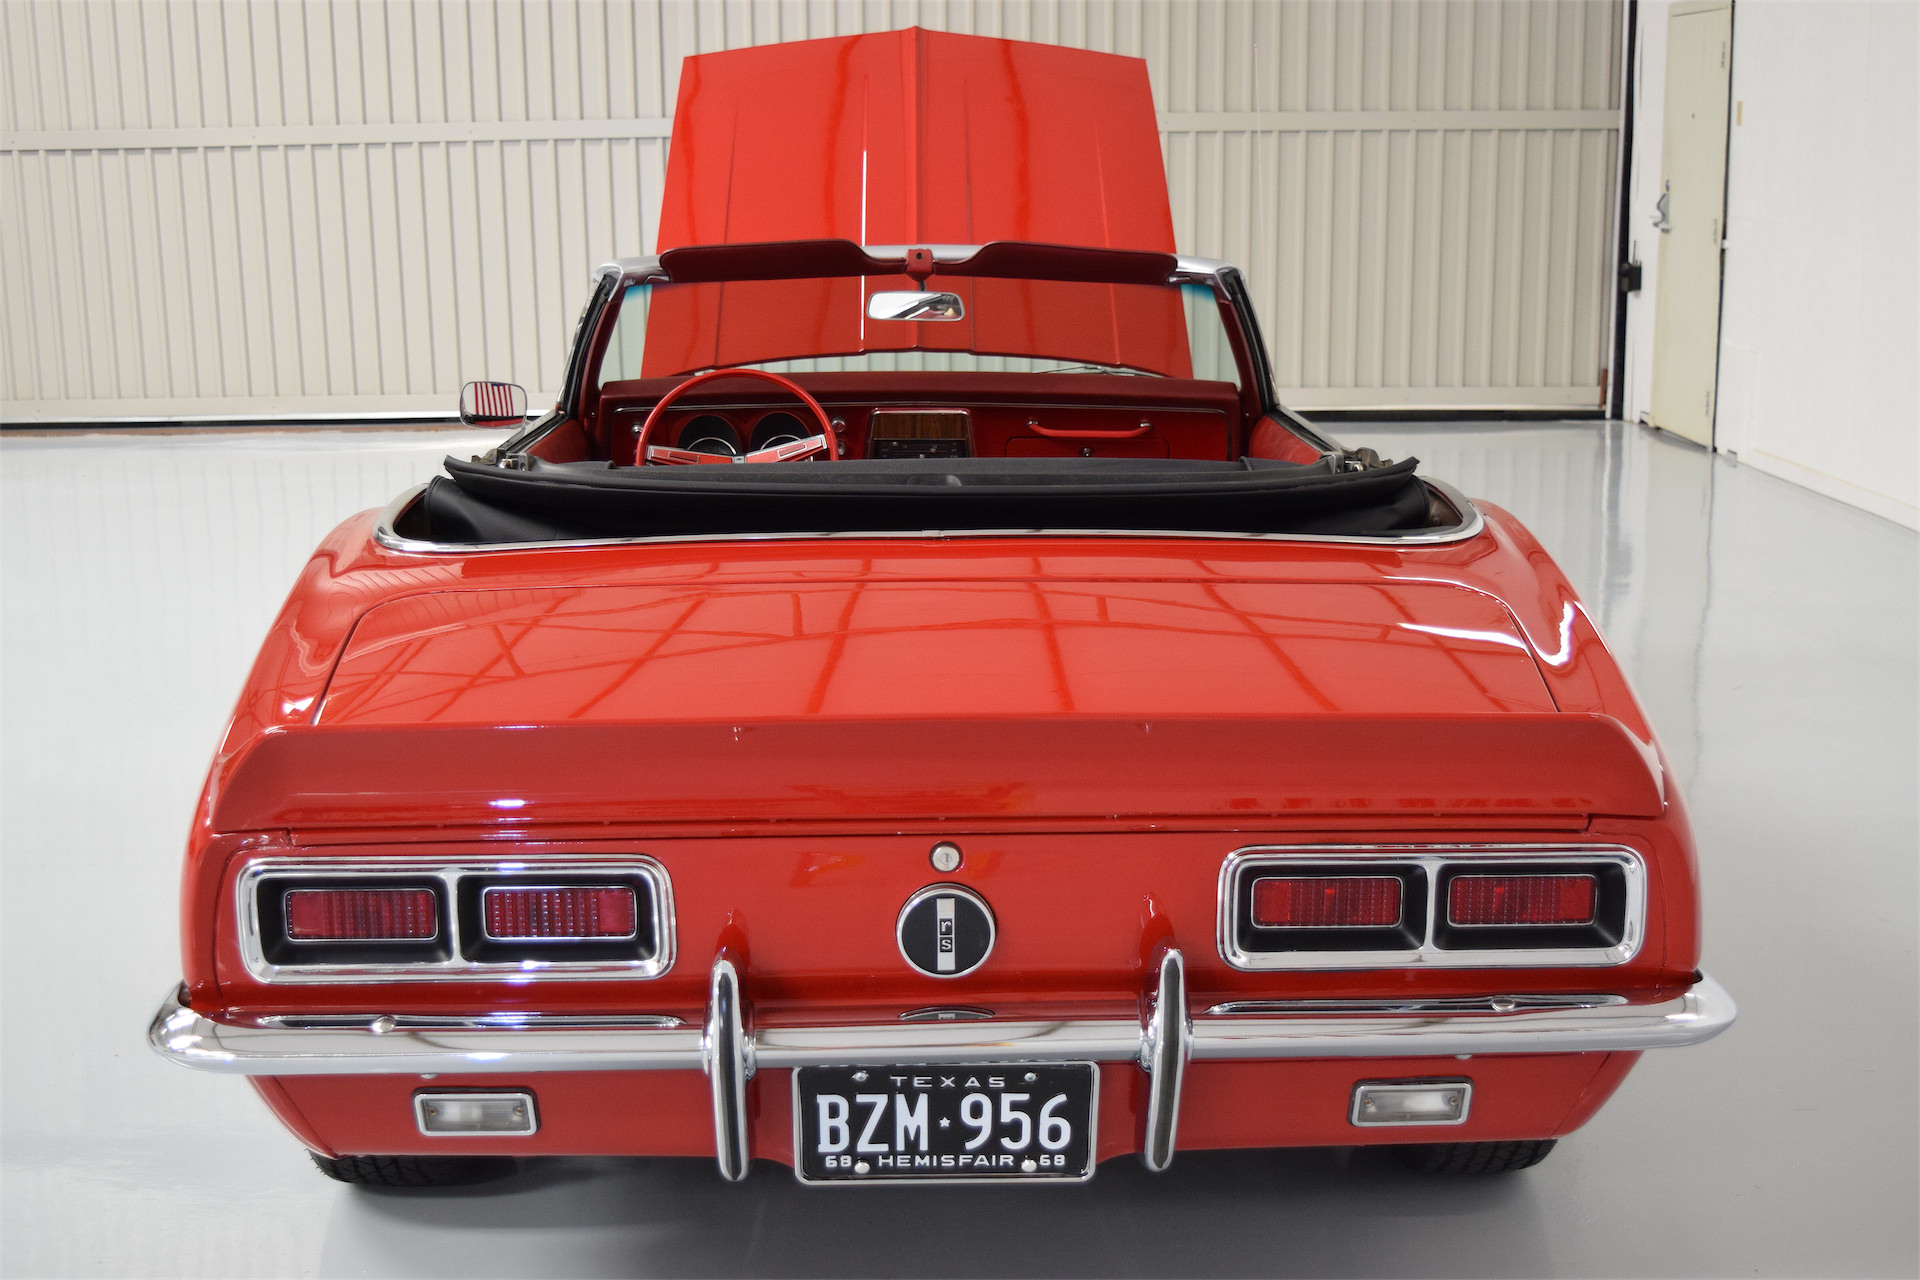 1968 Camaro Rally Sport Convertible - For Sale - MyRod com